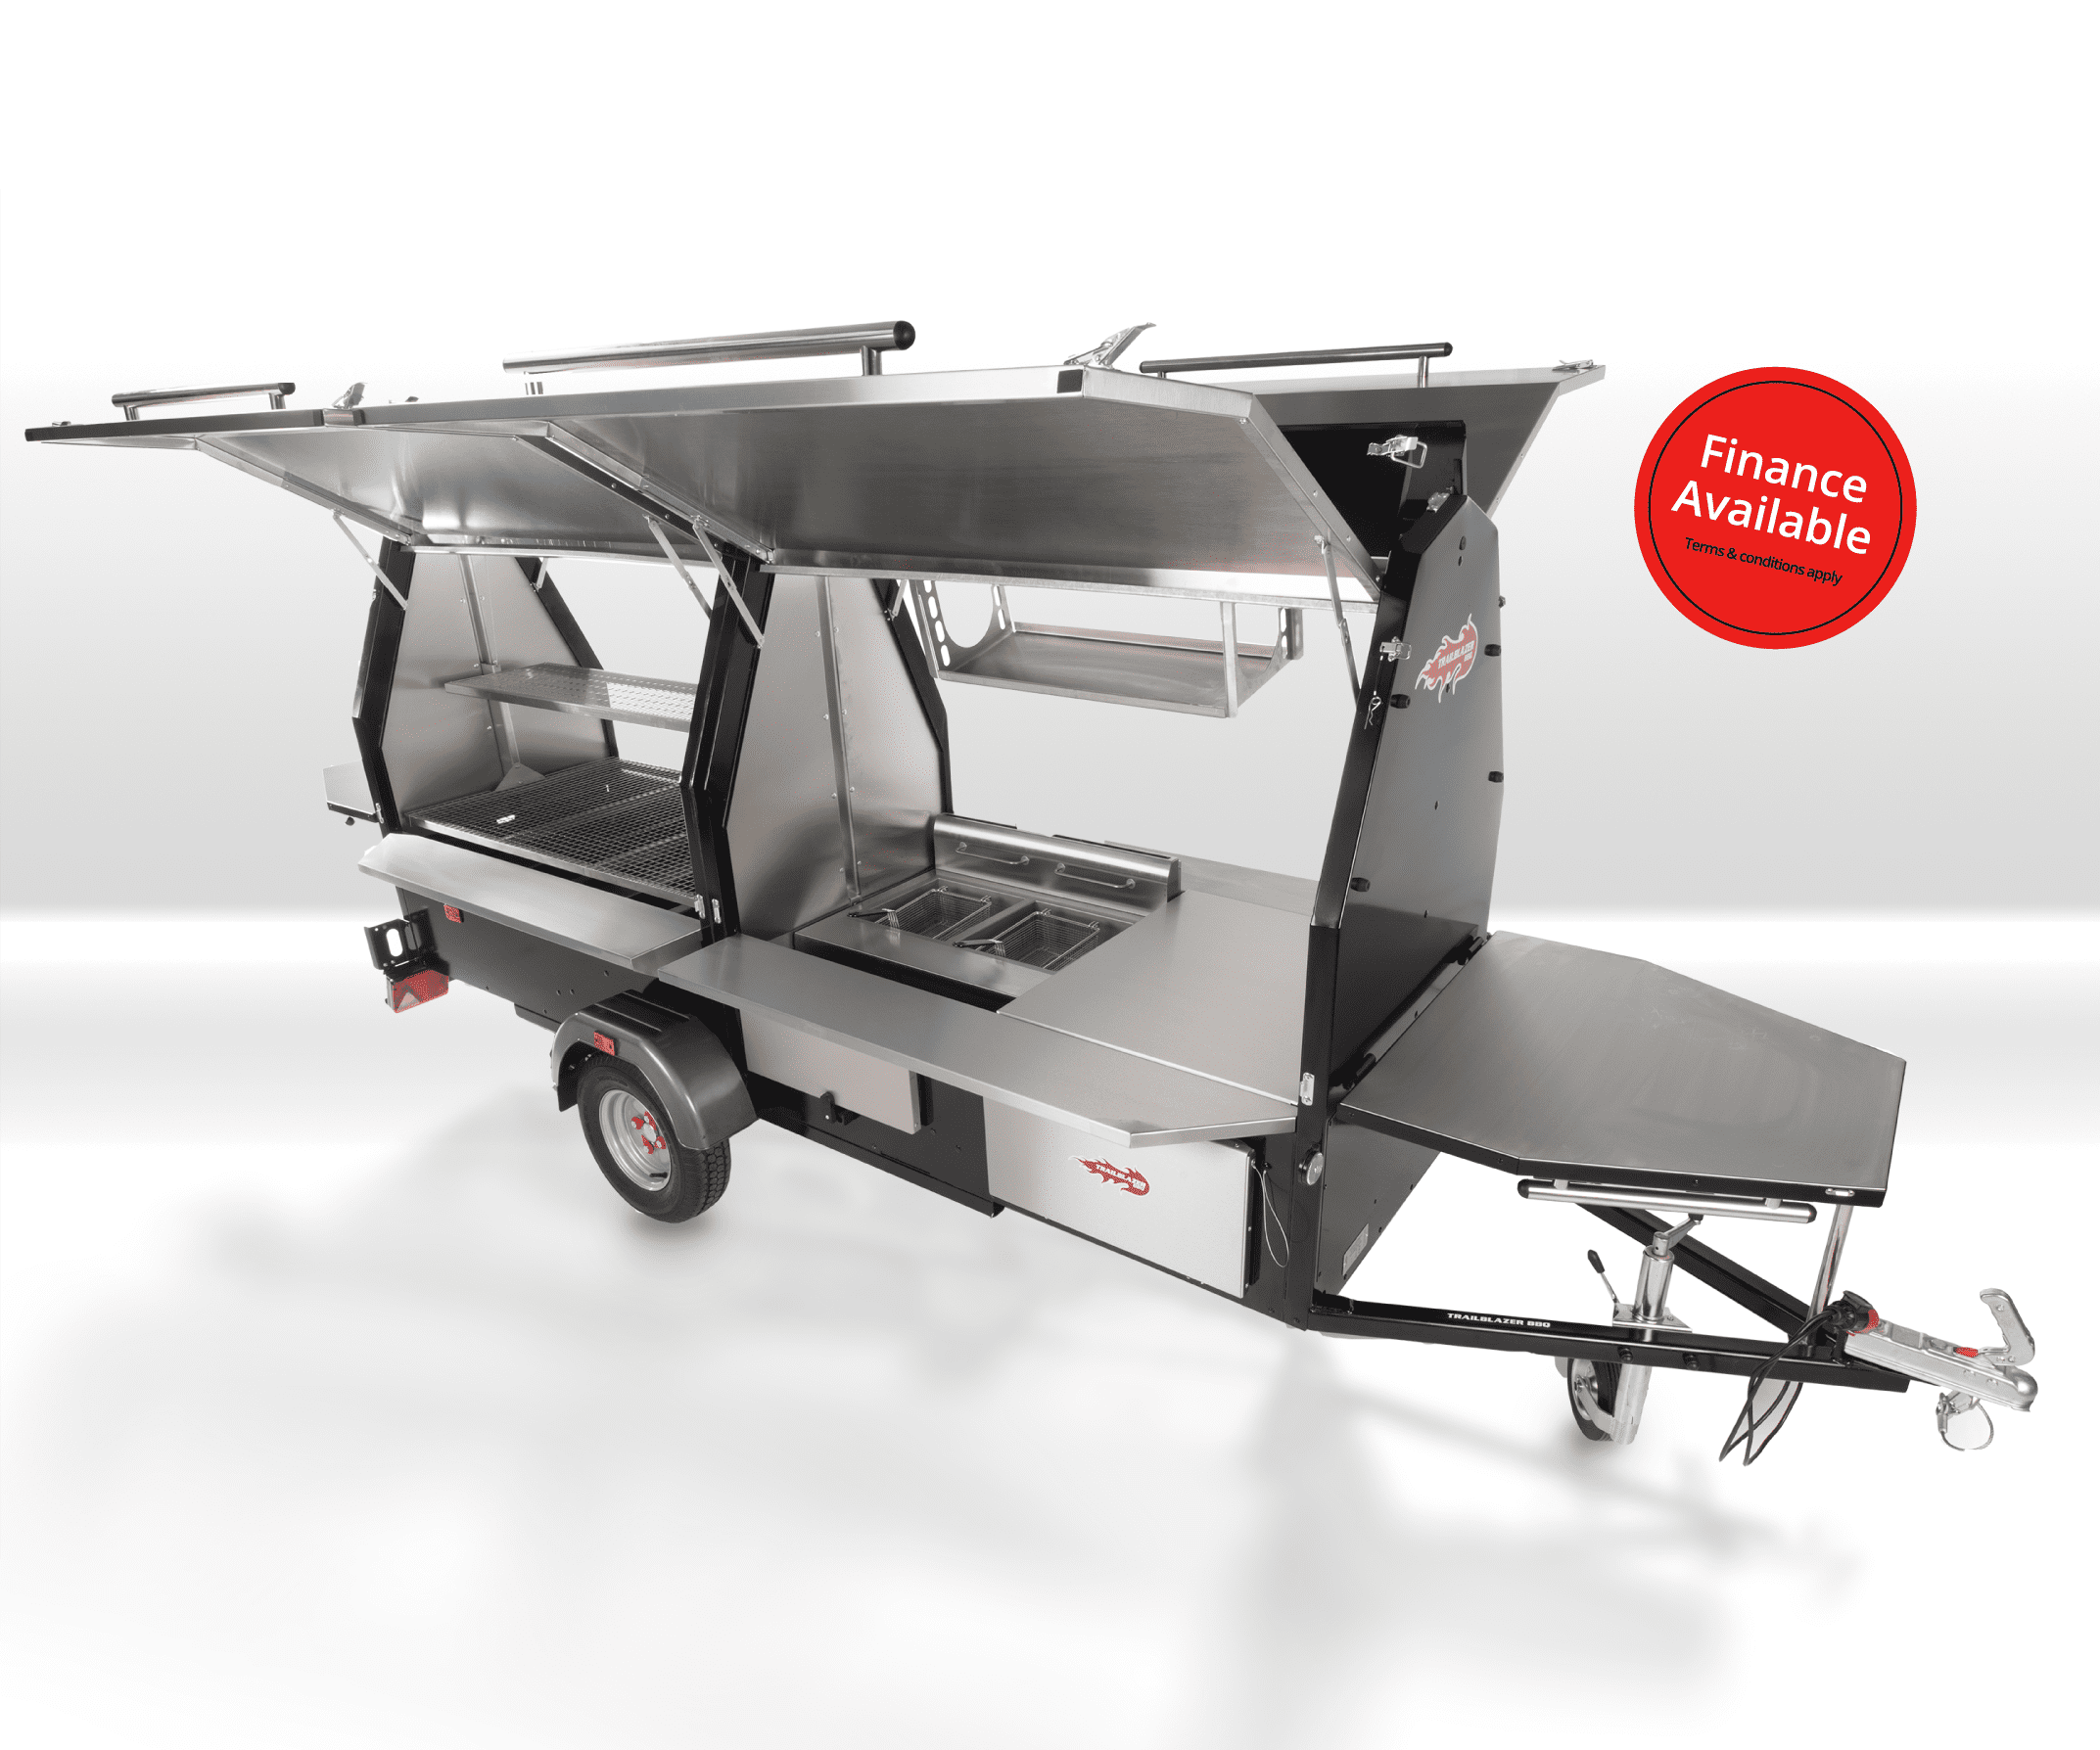 Towable BBQ trailer, The trailblazer food truck trailer